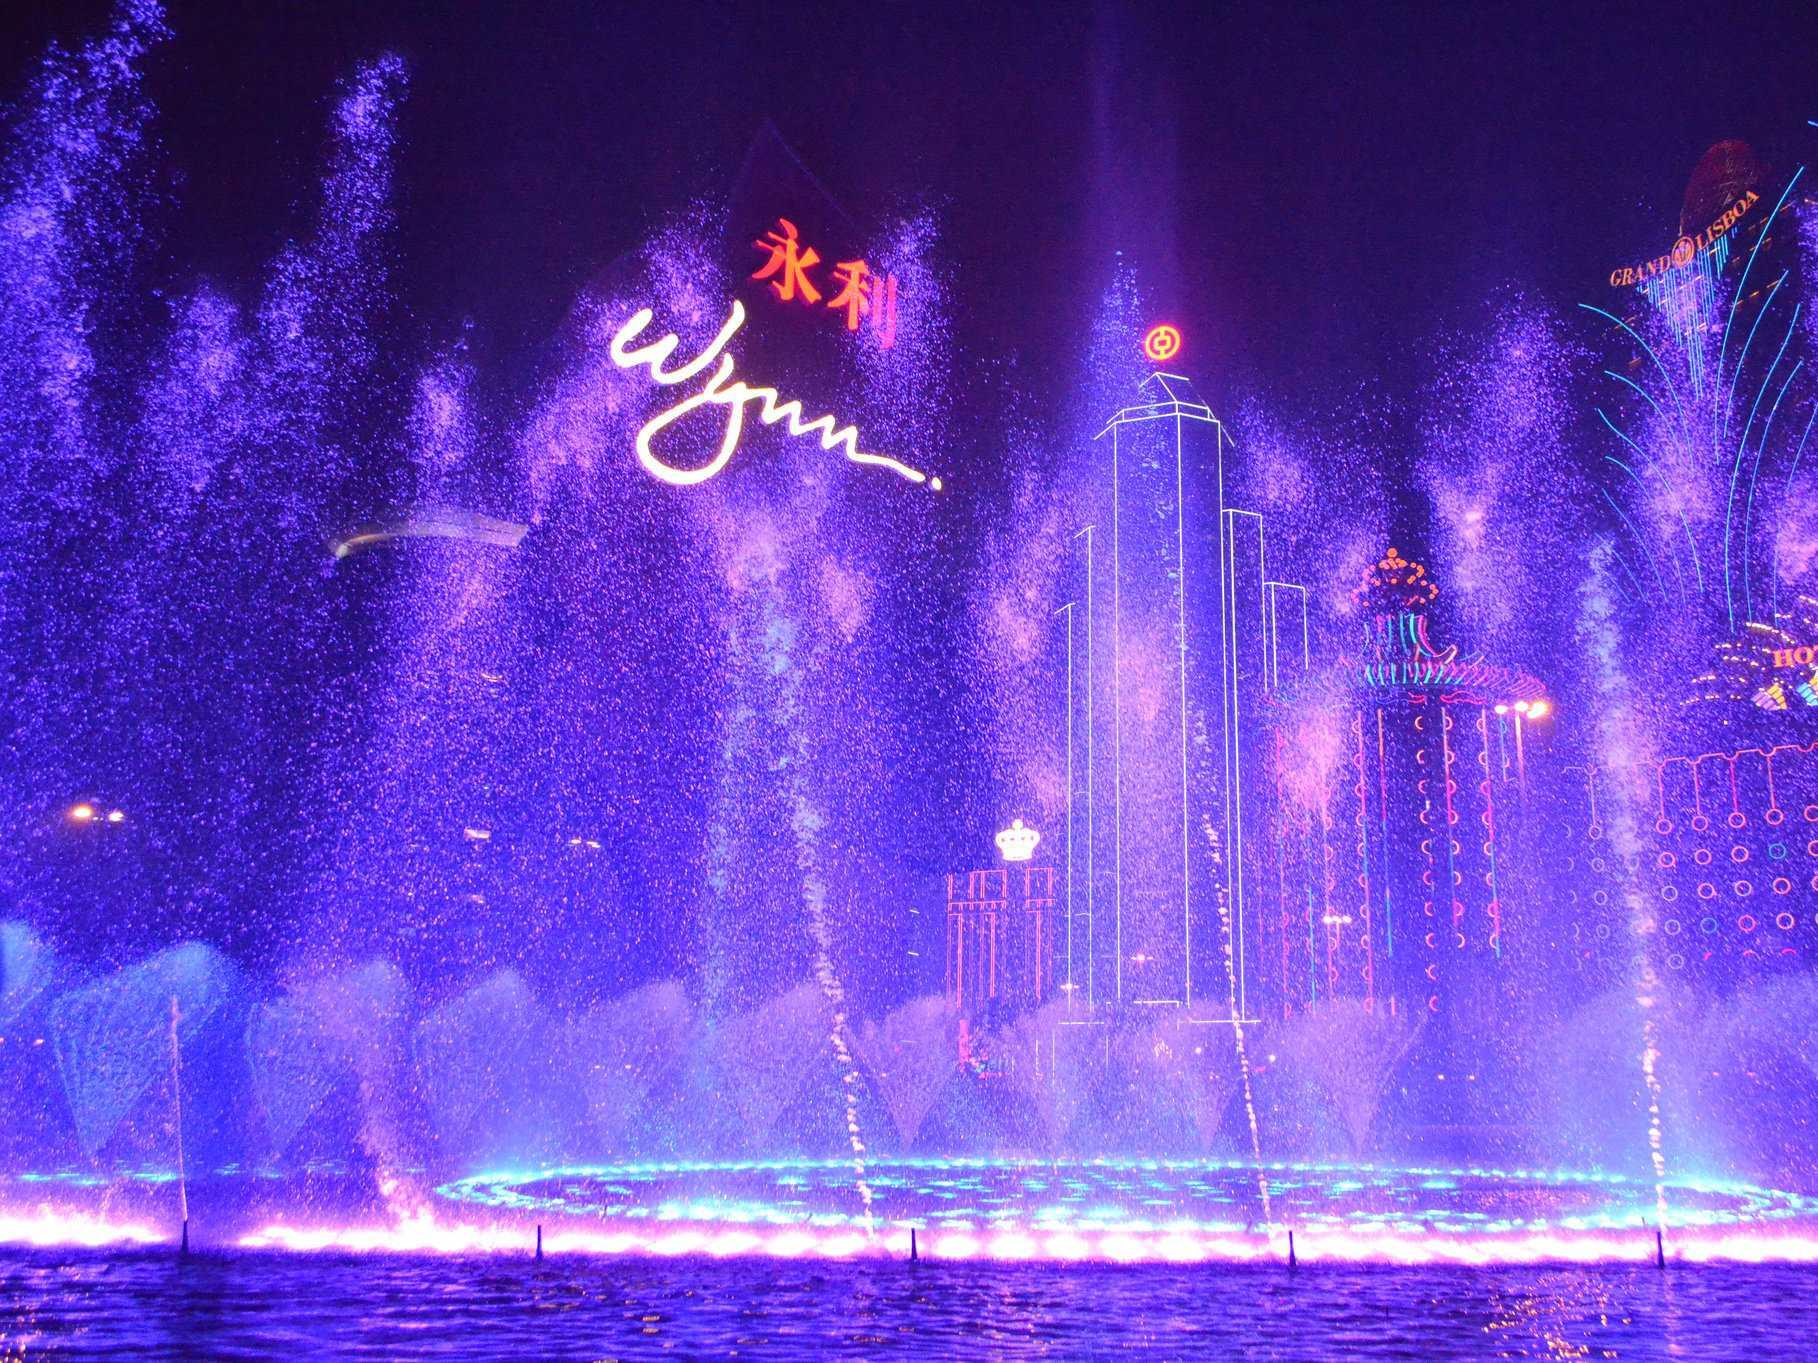 Wynn Resorts just put out a horrible sign for Macau